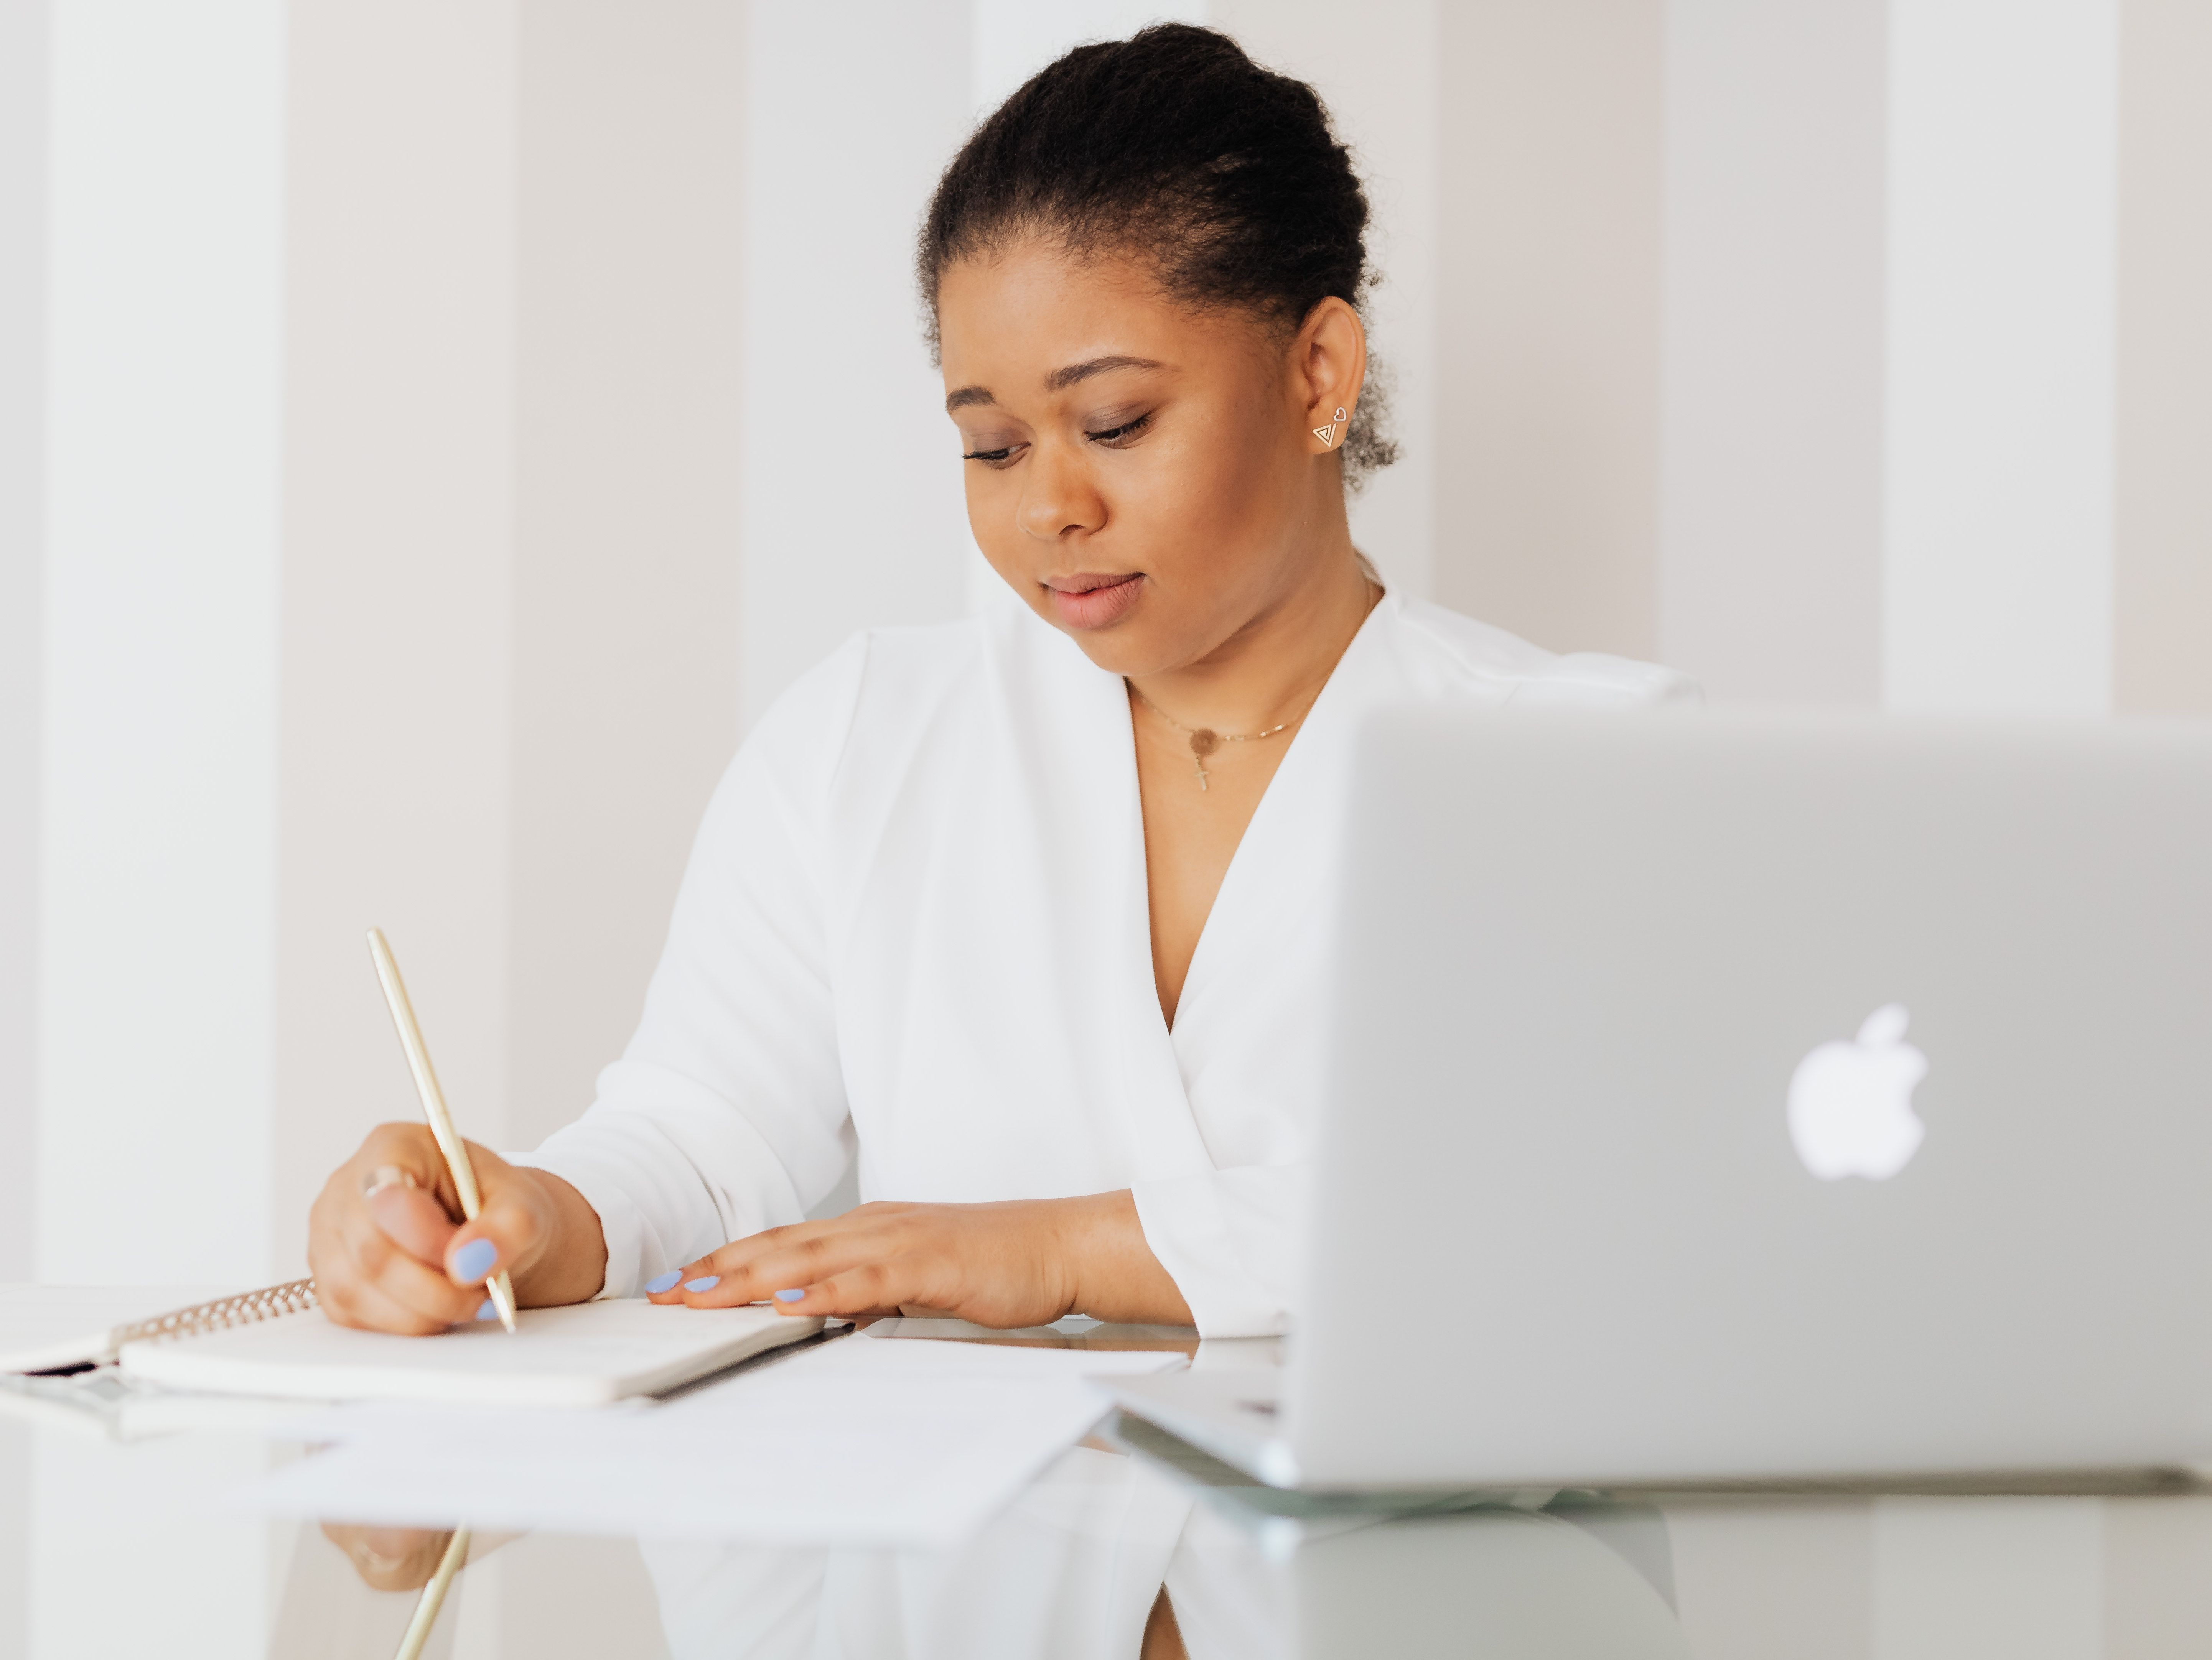 A woman writing in a note book next to her open laptop